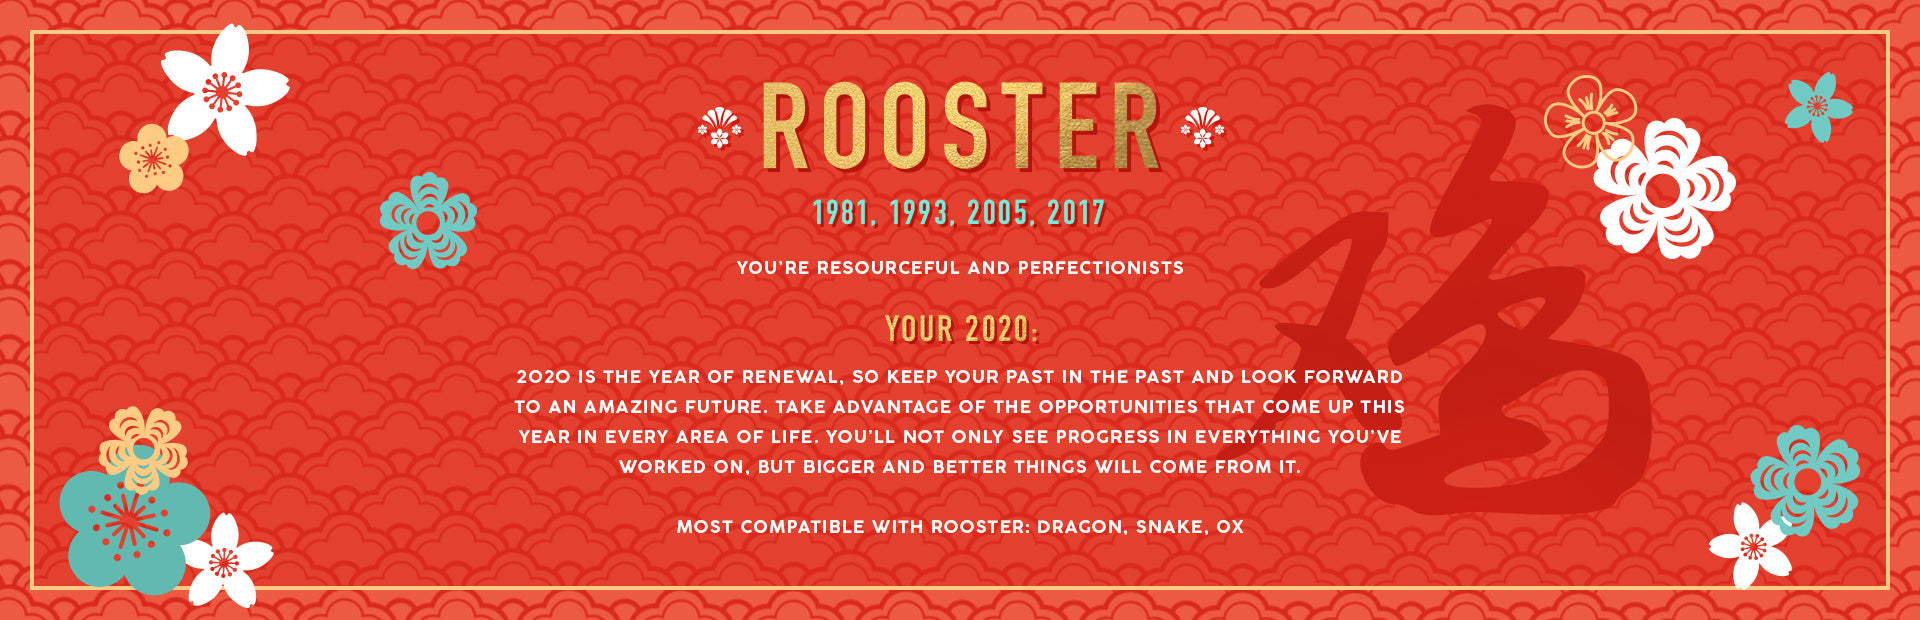 Rooster Lunar New Year Collection Banner Image